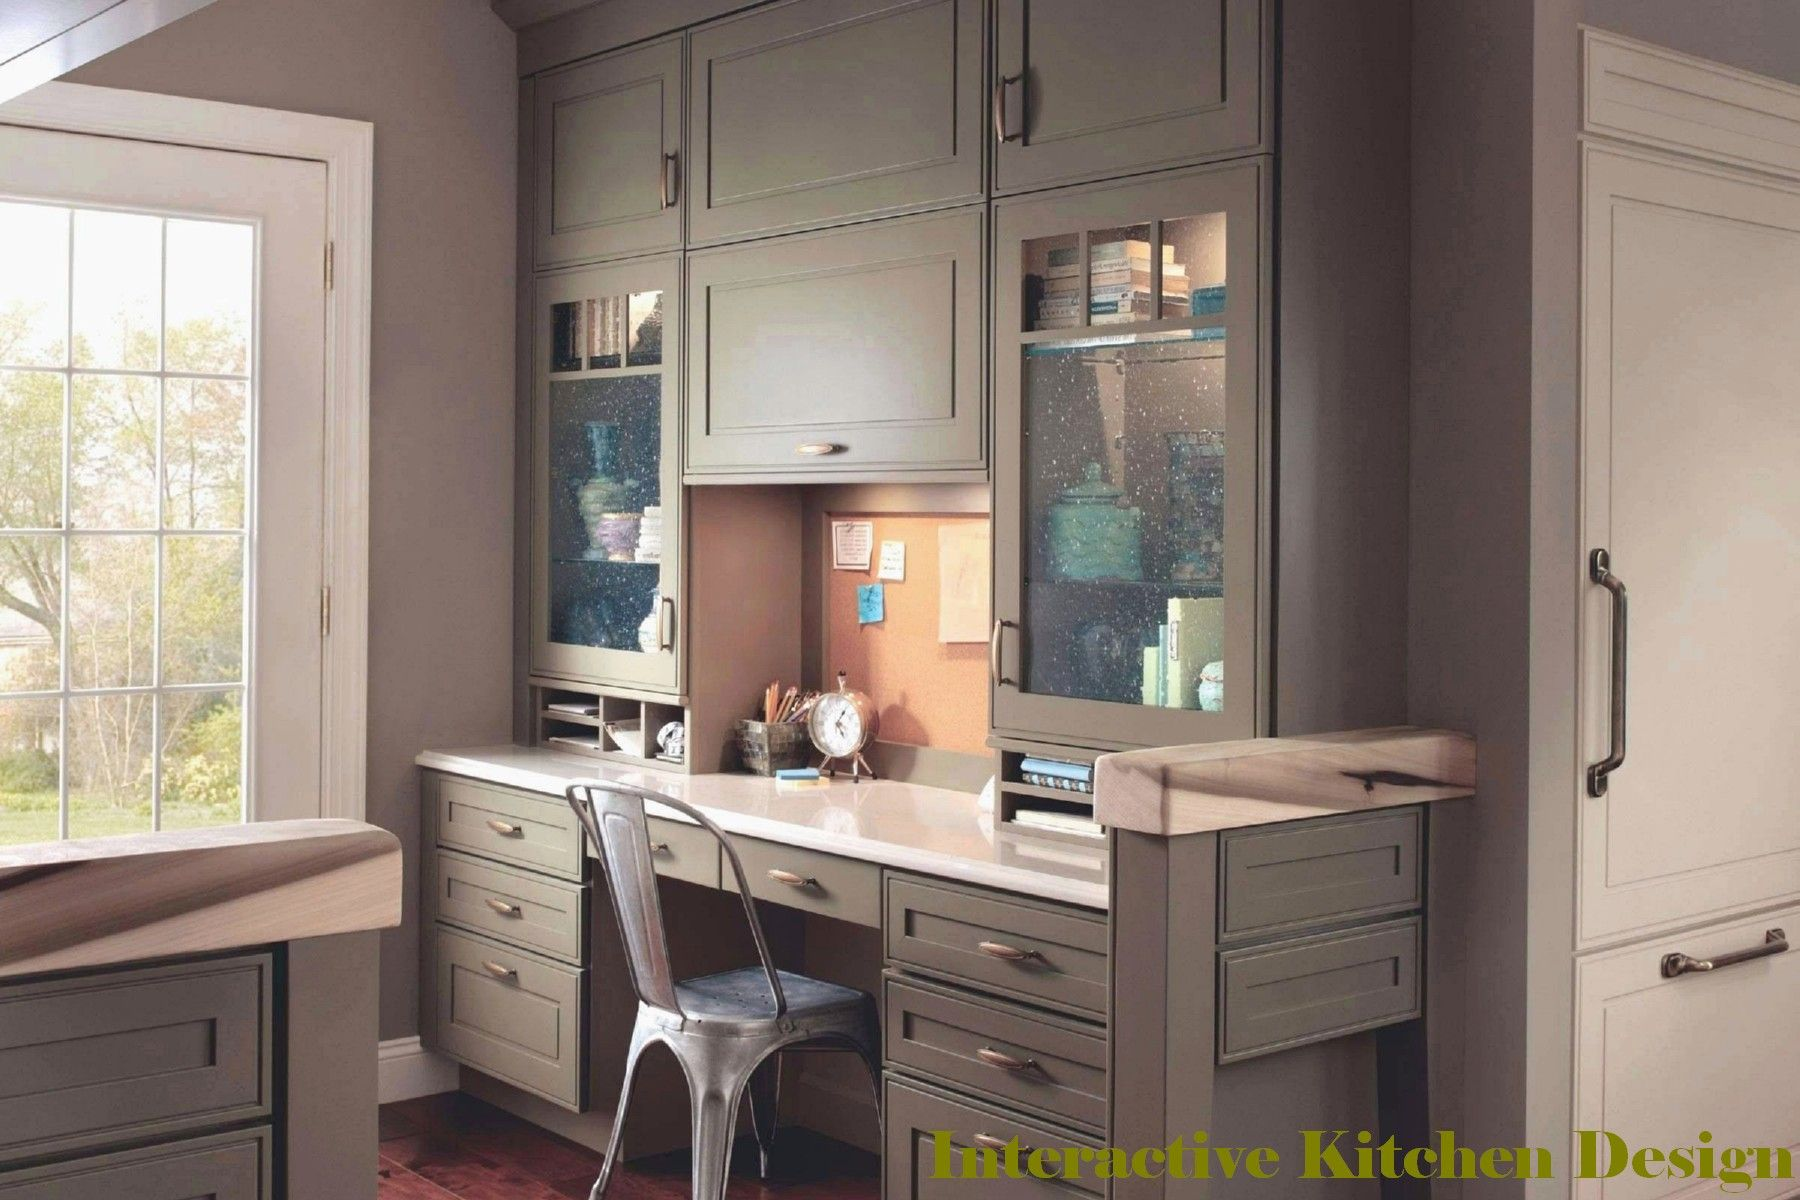 Amazing interactive kitchen design Featured Categories Featured Categories  Bread Boxes Holiday Dining Featured Categories Deep Fryers Measuring Cups  Spoons